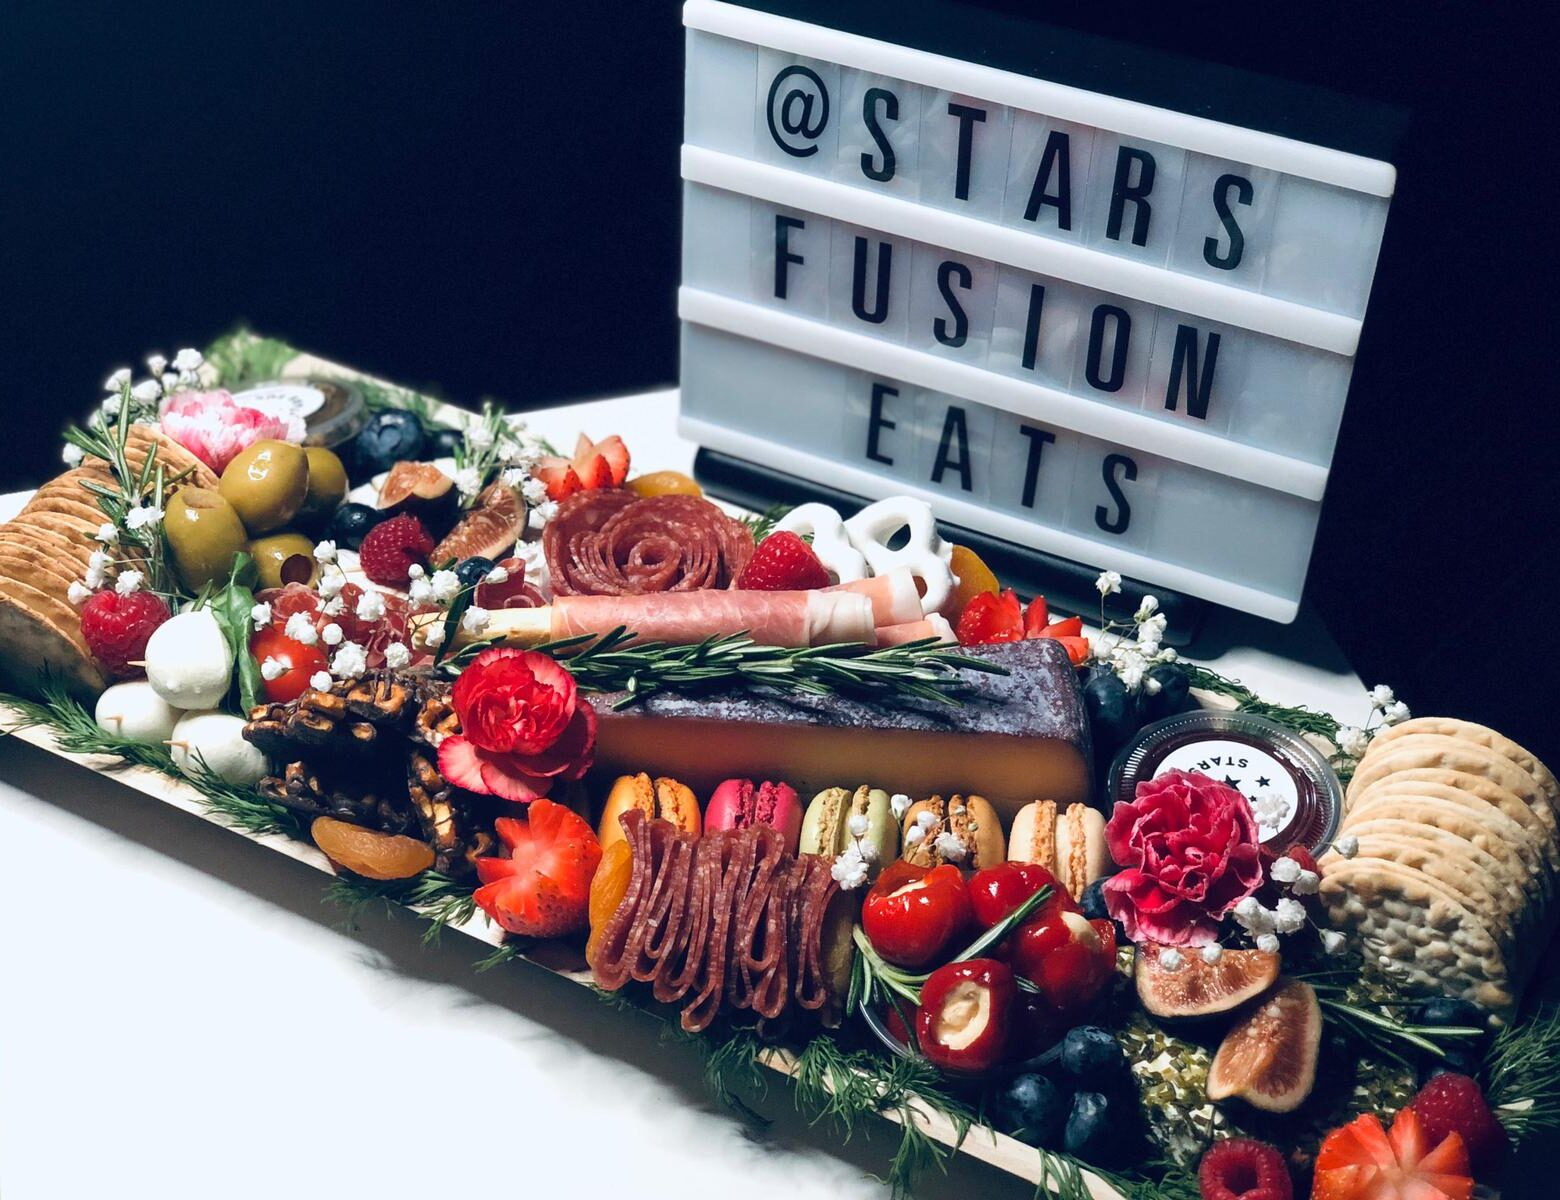 """""""Stars Fusion Eats has the BEST Charcuterie in the GTA. We specialize in gourmet snacking and luxury gifts. We provide a large variety of artisanal premium local products to create a custom gourmet snacking experience or luxurious gift to enjoy.  We create stylist custom pieces regardless of the audience. We provide the following options: Halal, Gluten-Free, Vegan, Vegetarian, Keto-friendly and more! So, enjoy upscale charcuterie with yourself, a loved one, your family for game night or a night in with your friends with the help of us, Stars Fusion Eats!"""""""